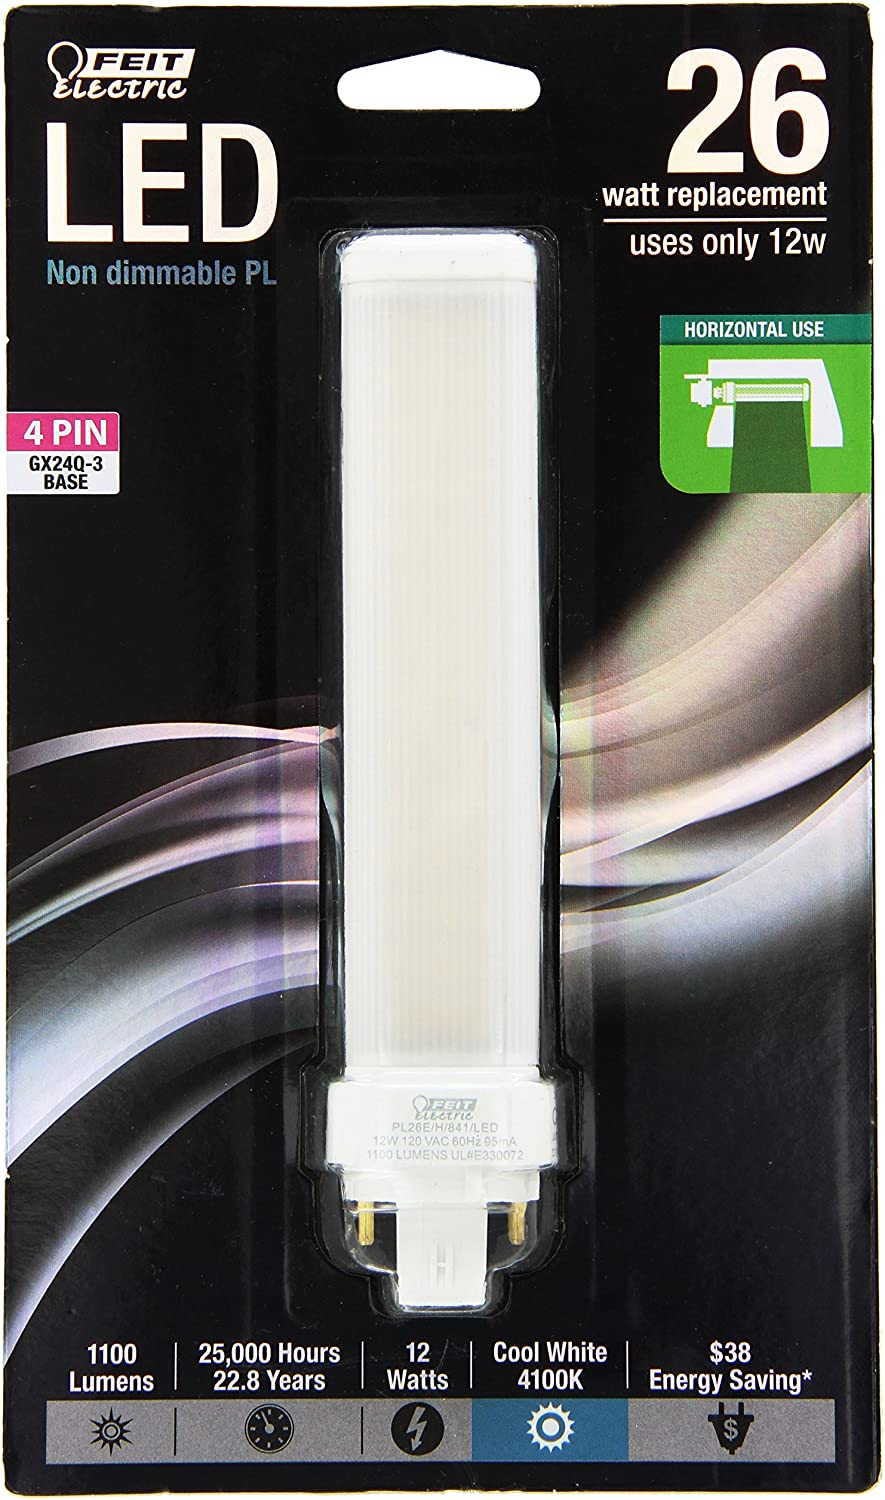 "FEIT Electric PL26E/H/841/LED PL Horizontal Recessed,1100 lm, 26W Equivalent, GX24Q Base LED Light Bulb, 6.25"" H x 1.4"" W x 1.4"" D, 4100K Cool White"